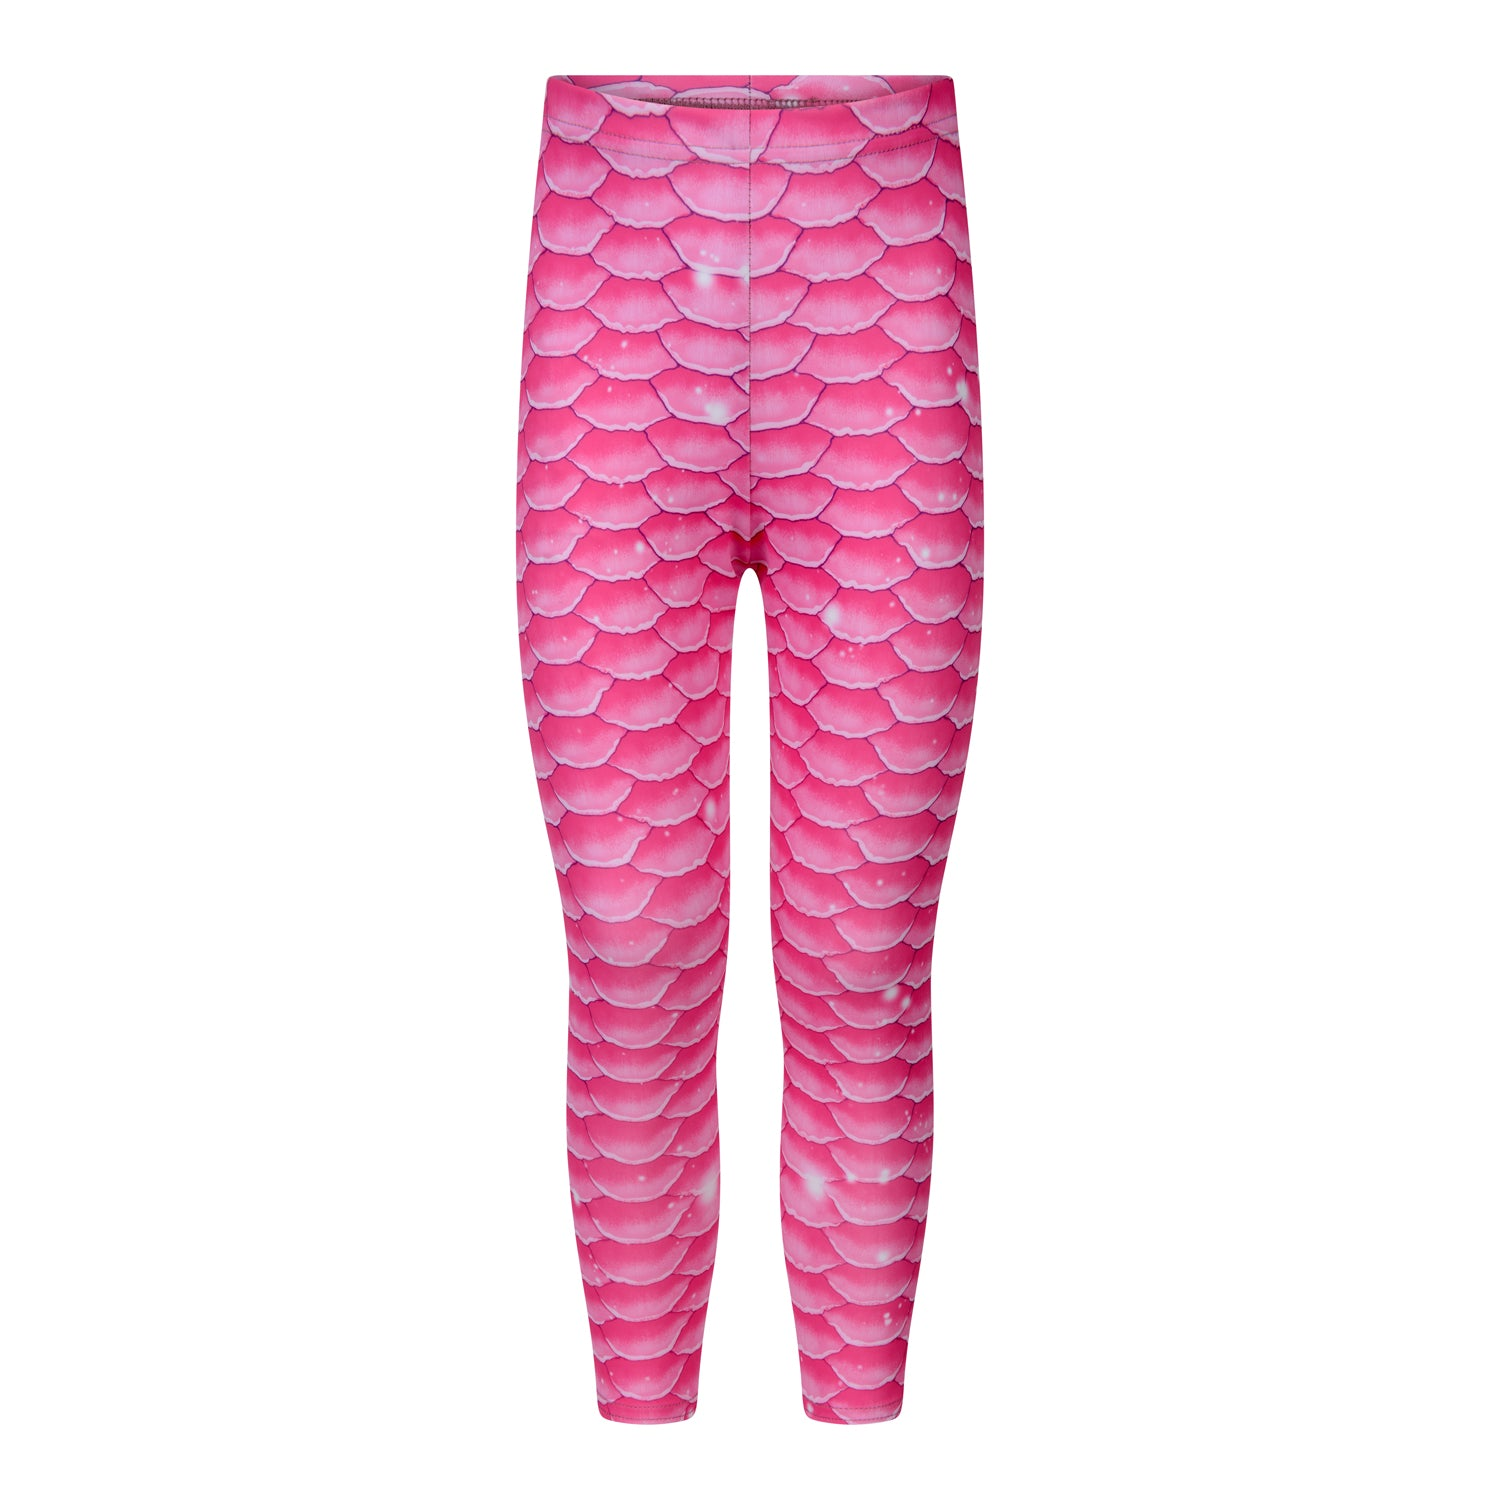 Passion Pink Mermaid Swim Leggings